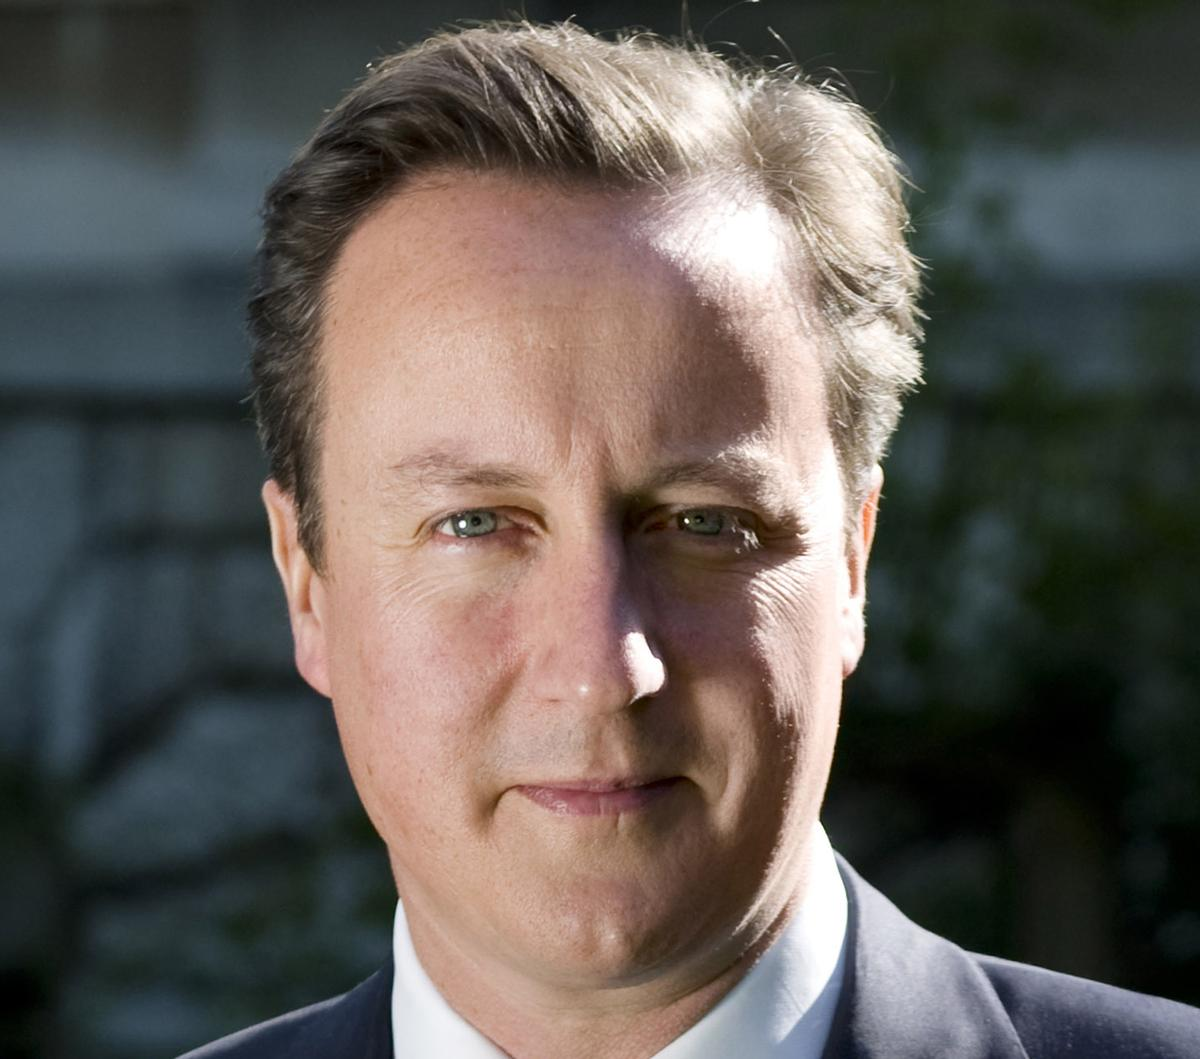 Cameron said that some clubs were putting ticket prices up 'very rapidly' each year